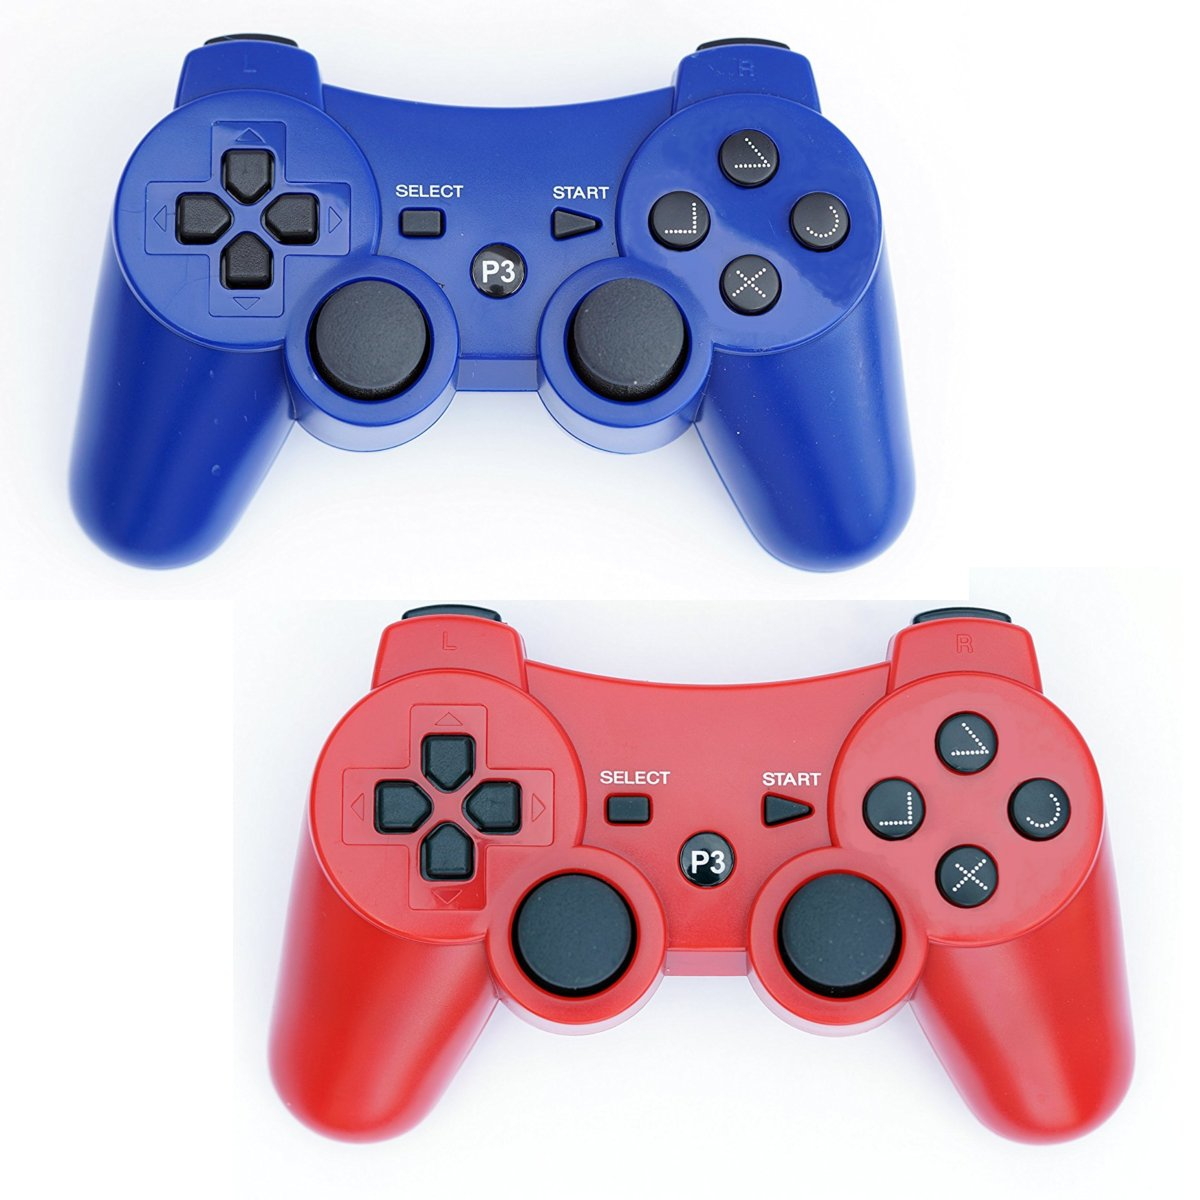 PS3 Controller Wireless 2 Pcs Double Shock Gamepad for Playstation 3, Sixaxis wireless PS3 Controller (Red + Blue)